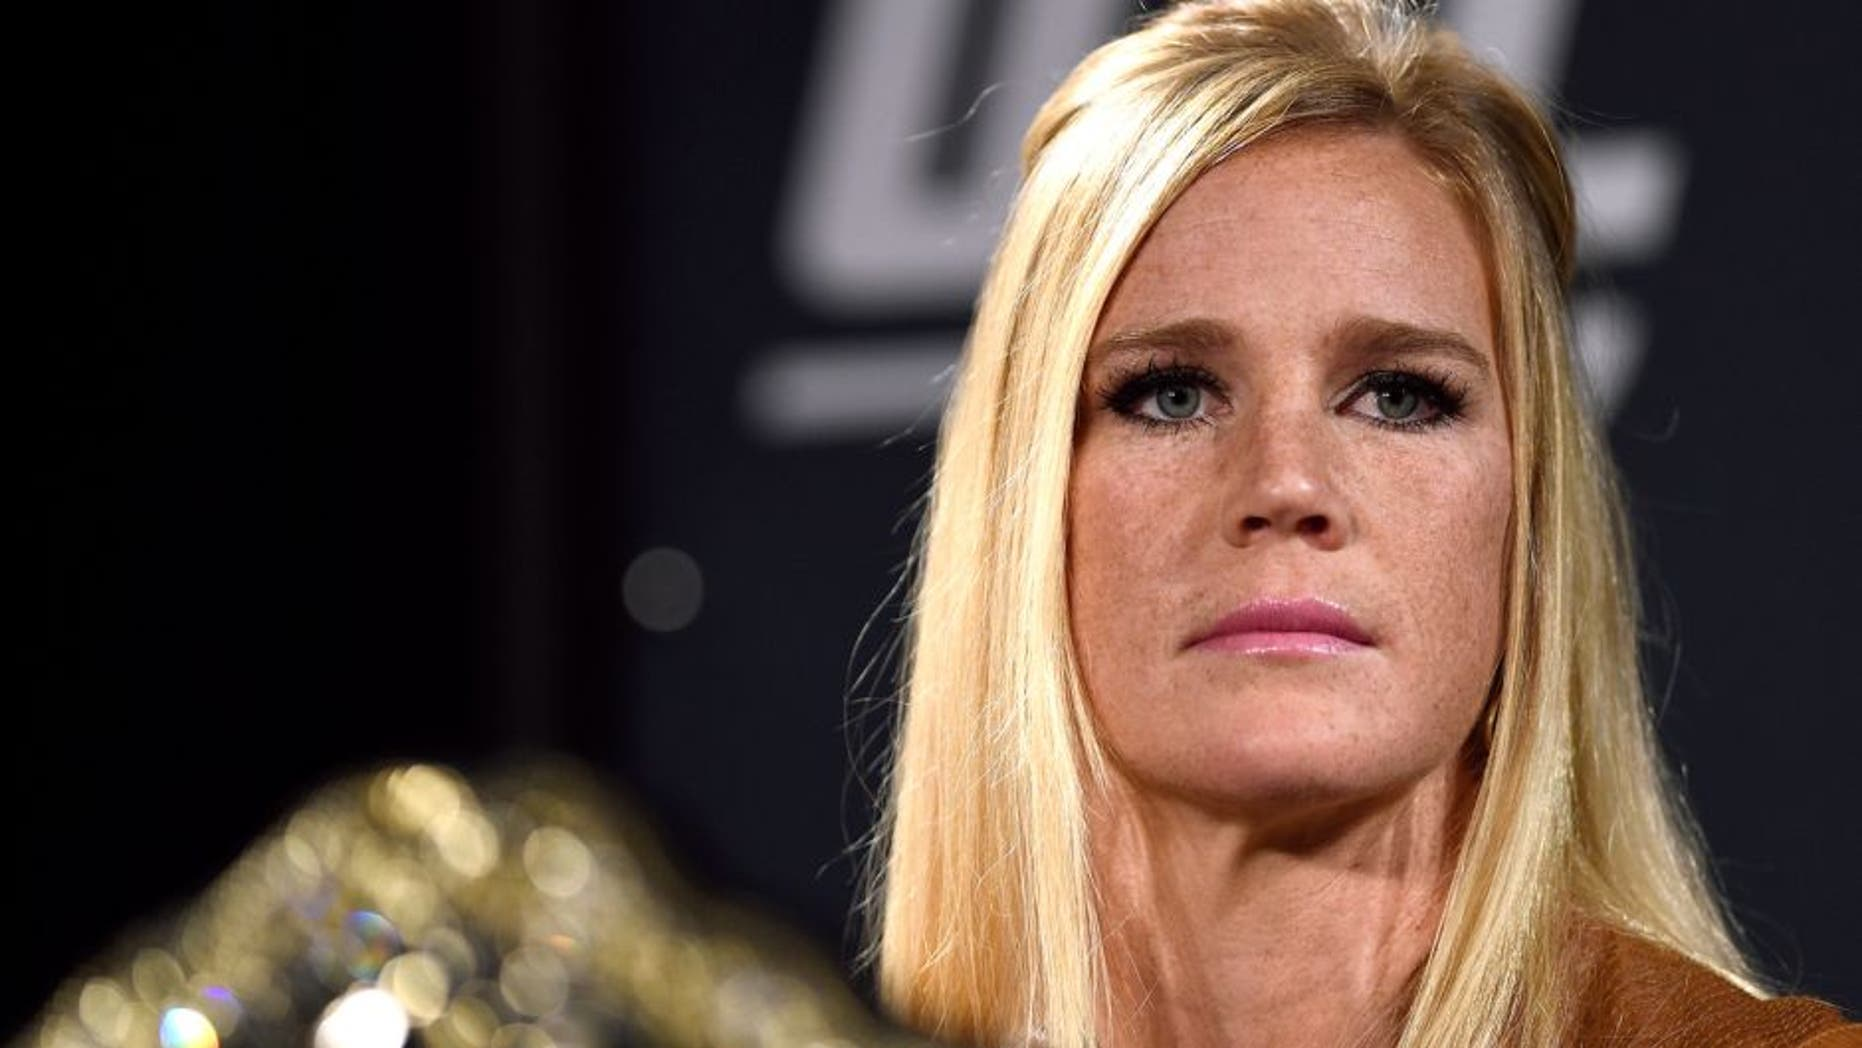 LAS VEGAS, NV - JANUARY 20: UFC women's bantamweight champion Holly Holm interacts with the media during the UFC 197 on-sale press conference event inside MGM Grand Hotel & Casino on January 20, 2016 in Las Vegas, Nevada. (Photo by Jeff Bottari/Zuffa LLC/Zuffa LLC via Getty Images)